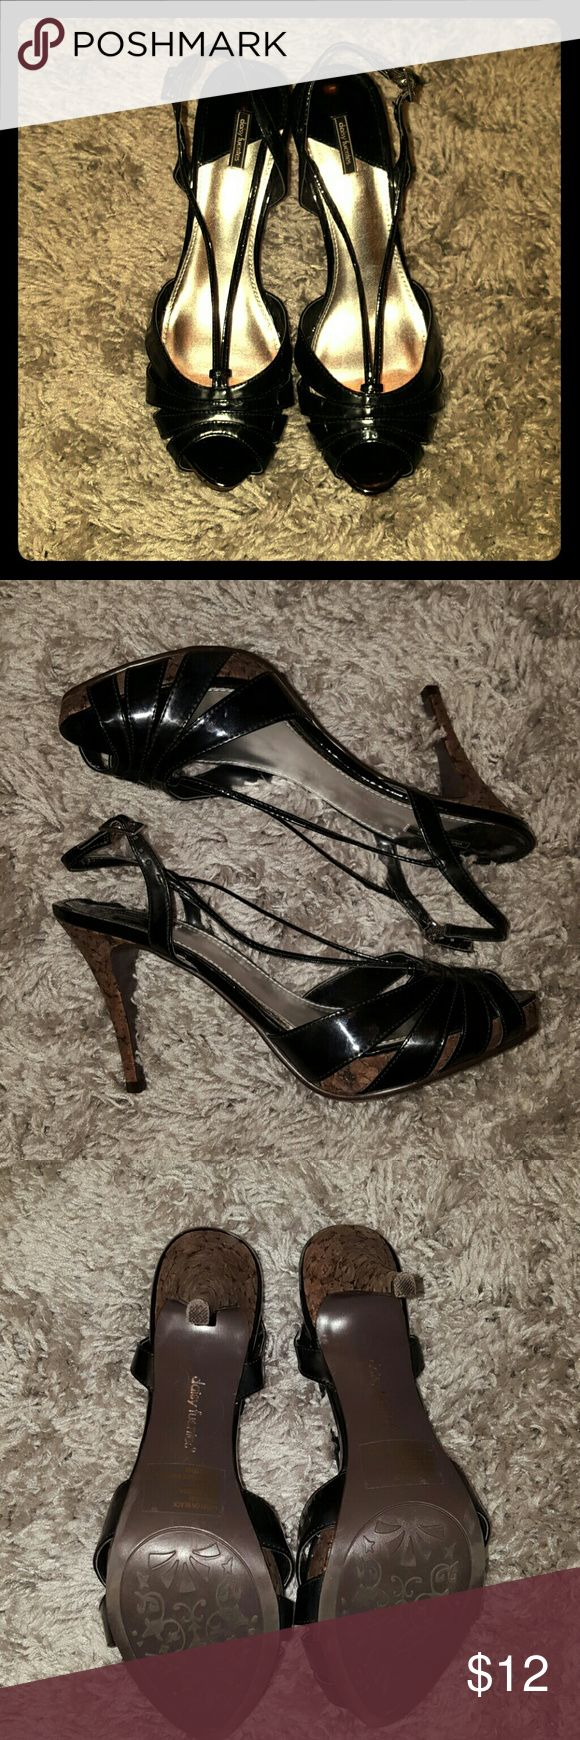 Daisy Fuentes Black and Cork heels Black and cork heels / worn once briefly Daisy Fuentes Shoes Heels